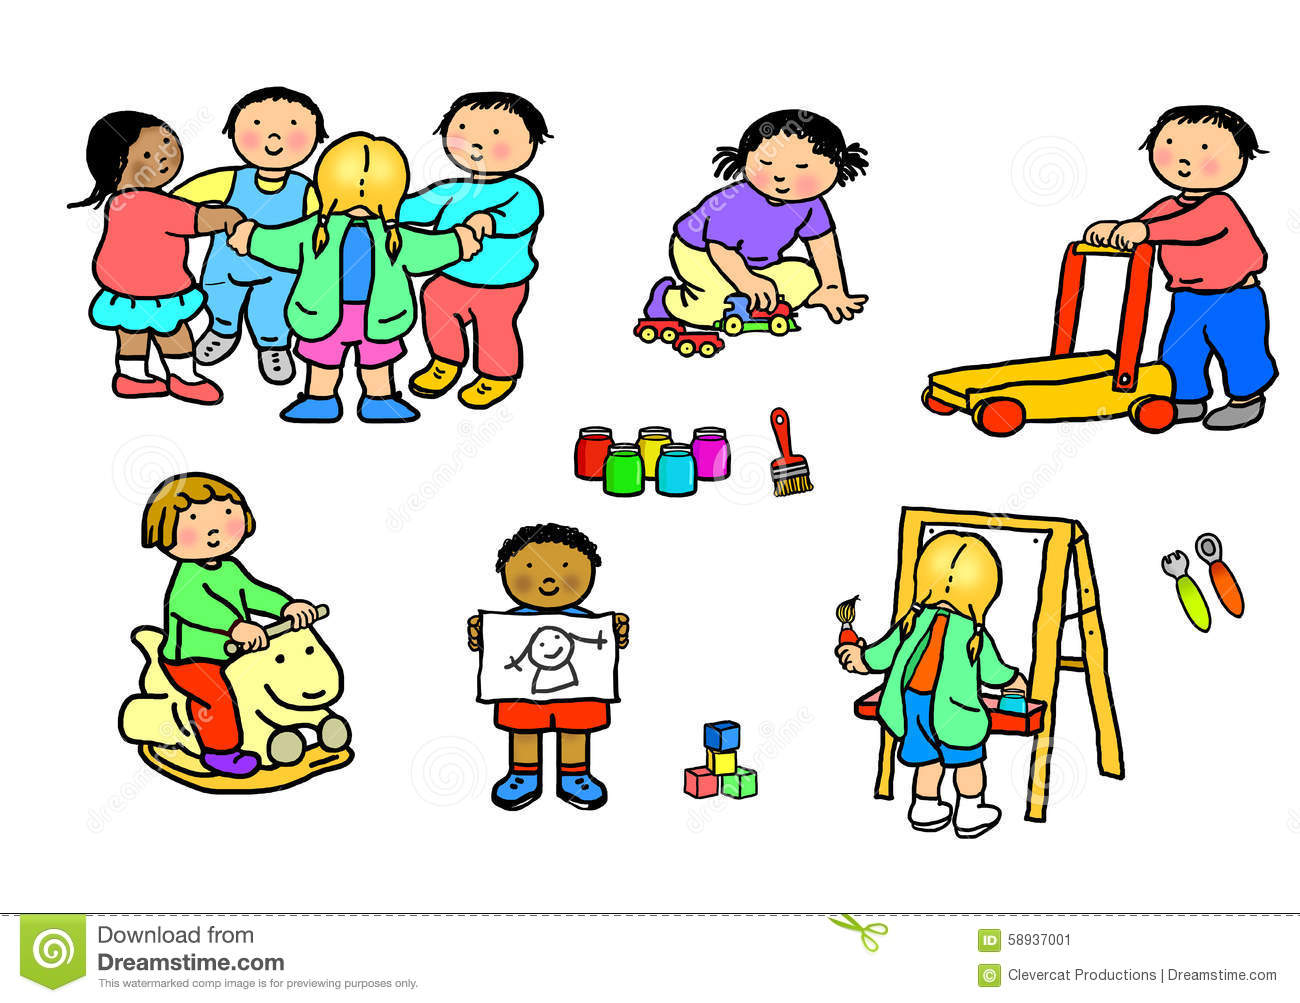 Daycare clipart images 6 » Clipart Station.